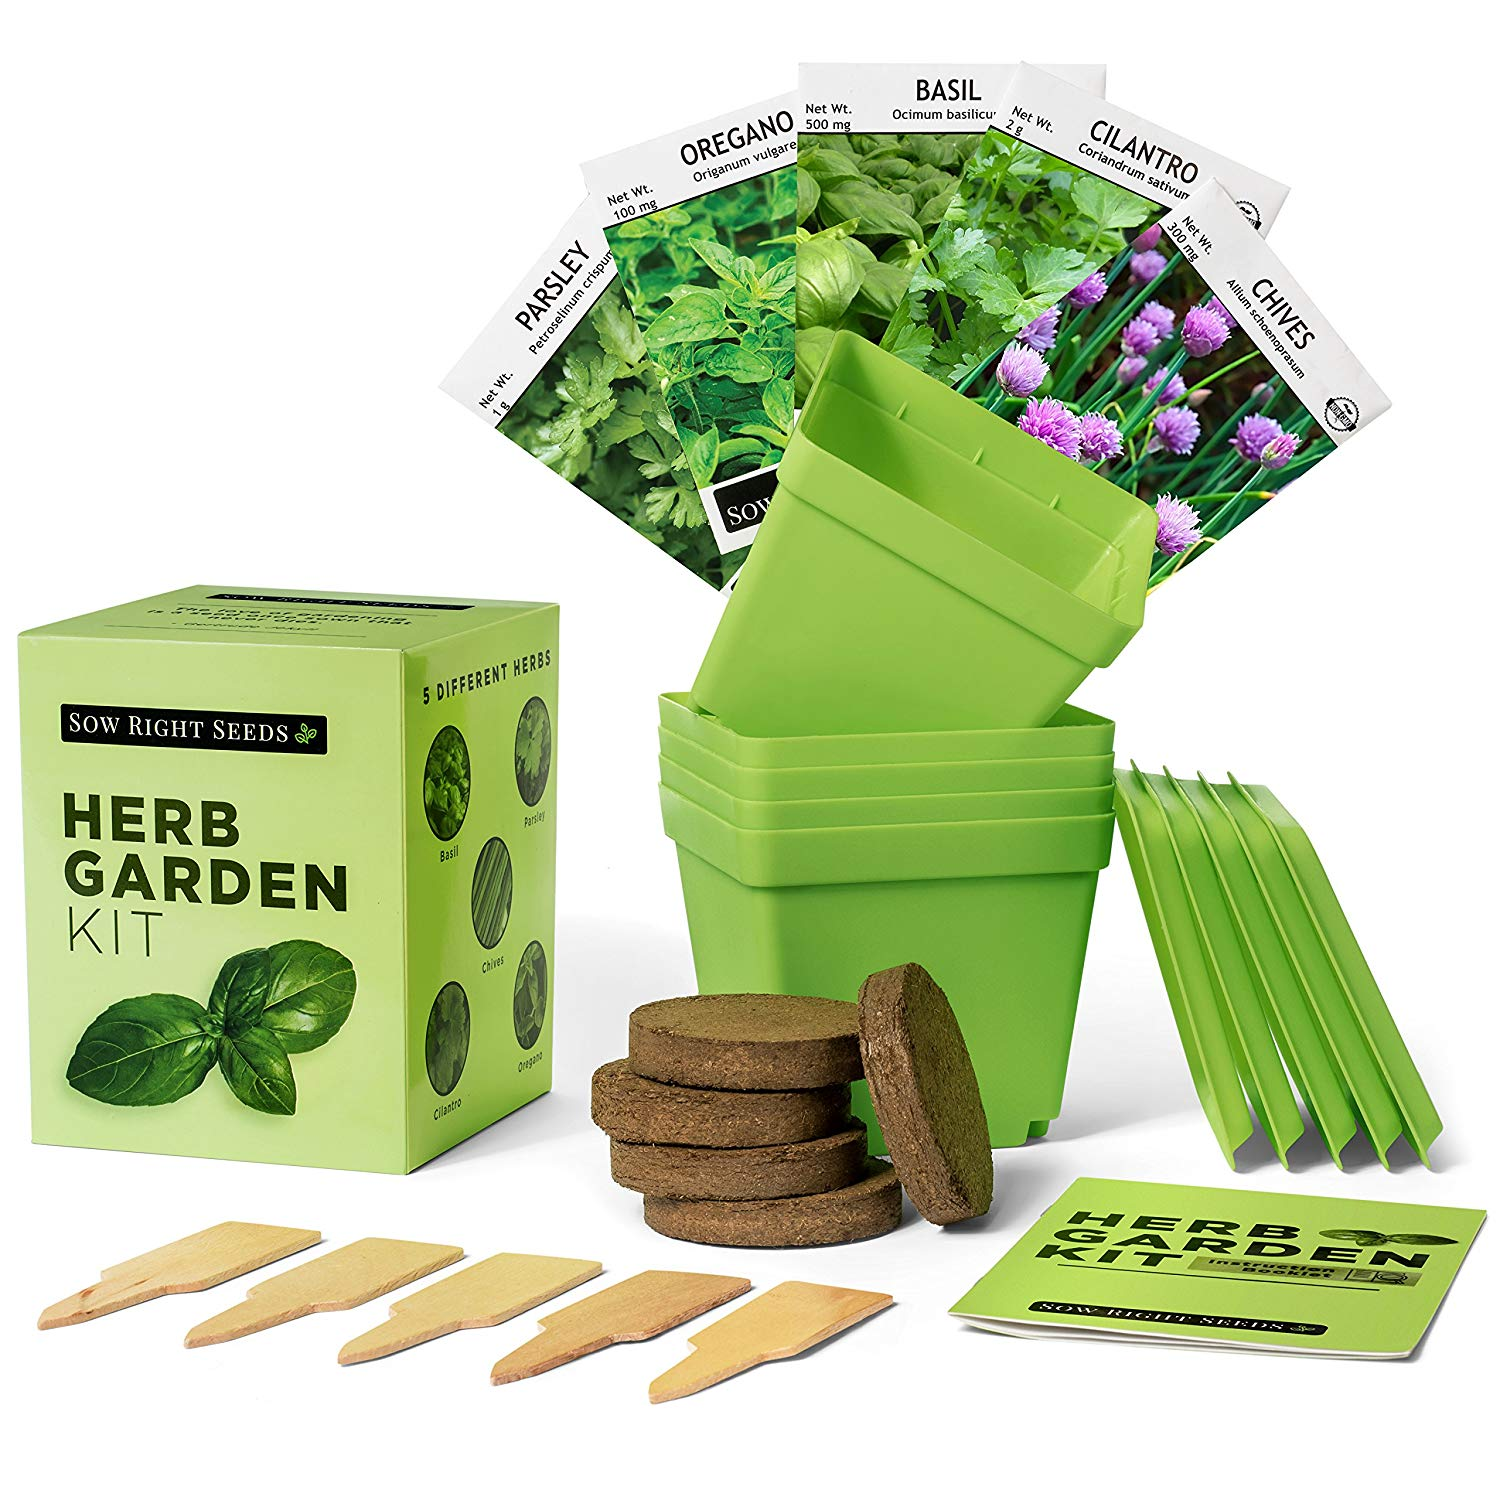 Indoor Herb Garden Starter Kit - Full Size Seed Packets of Basil, Chives, Cilantro, Oregano & Parsley - Everything You Need to Grow Herbs in Your Kitchen - Soil, Reusable Pots, Trays, Plant Markers,